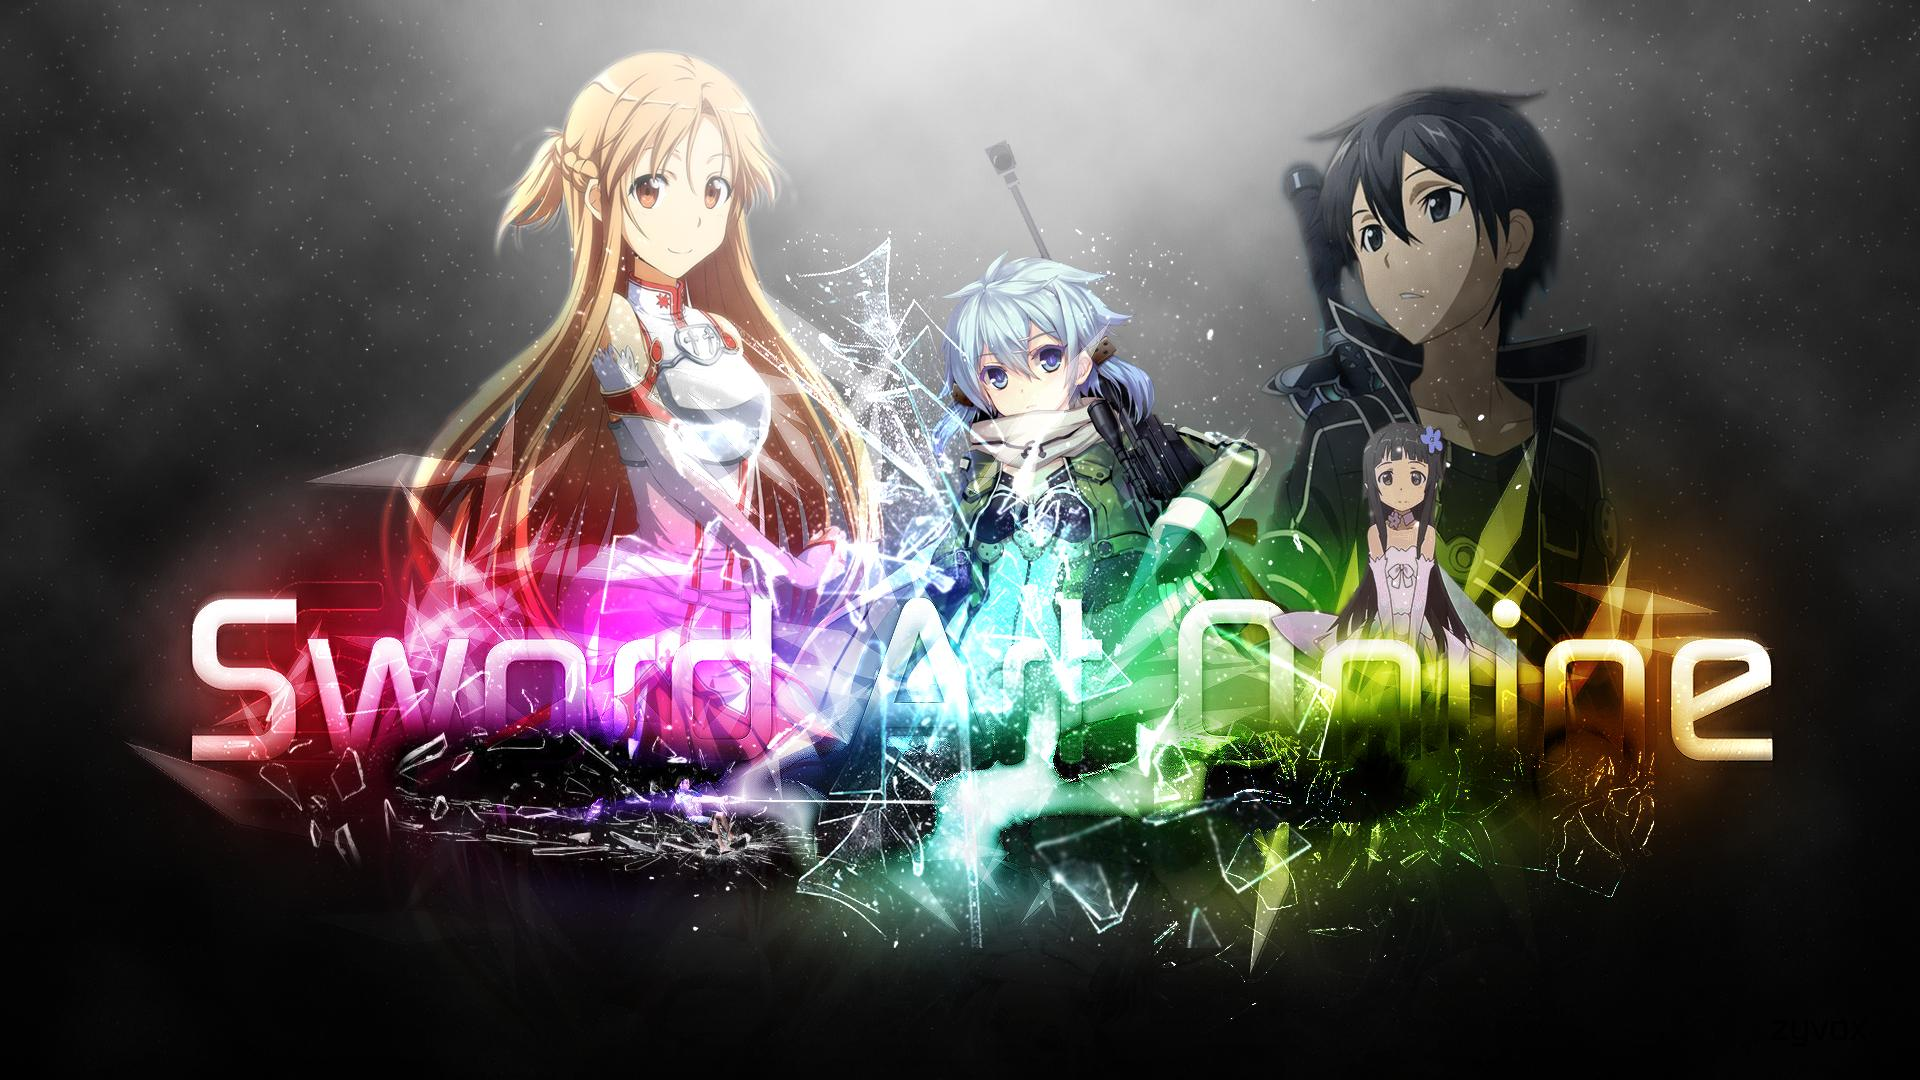 Sword Art Online Hindi Dubbed